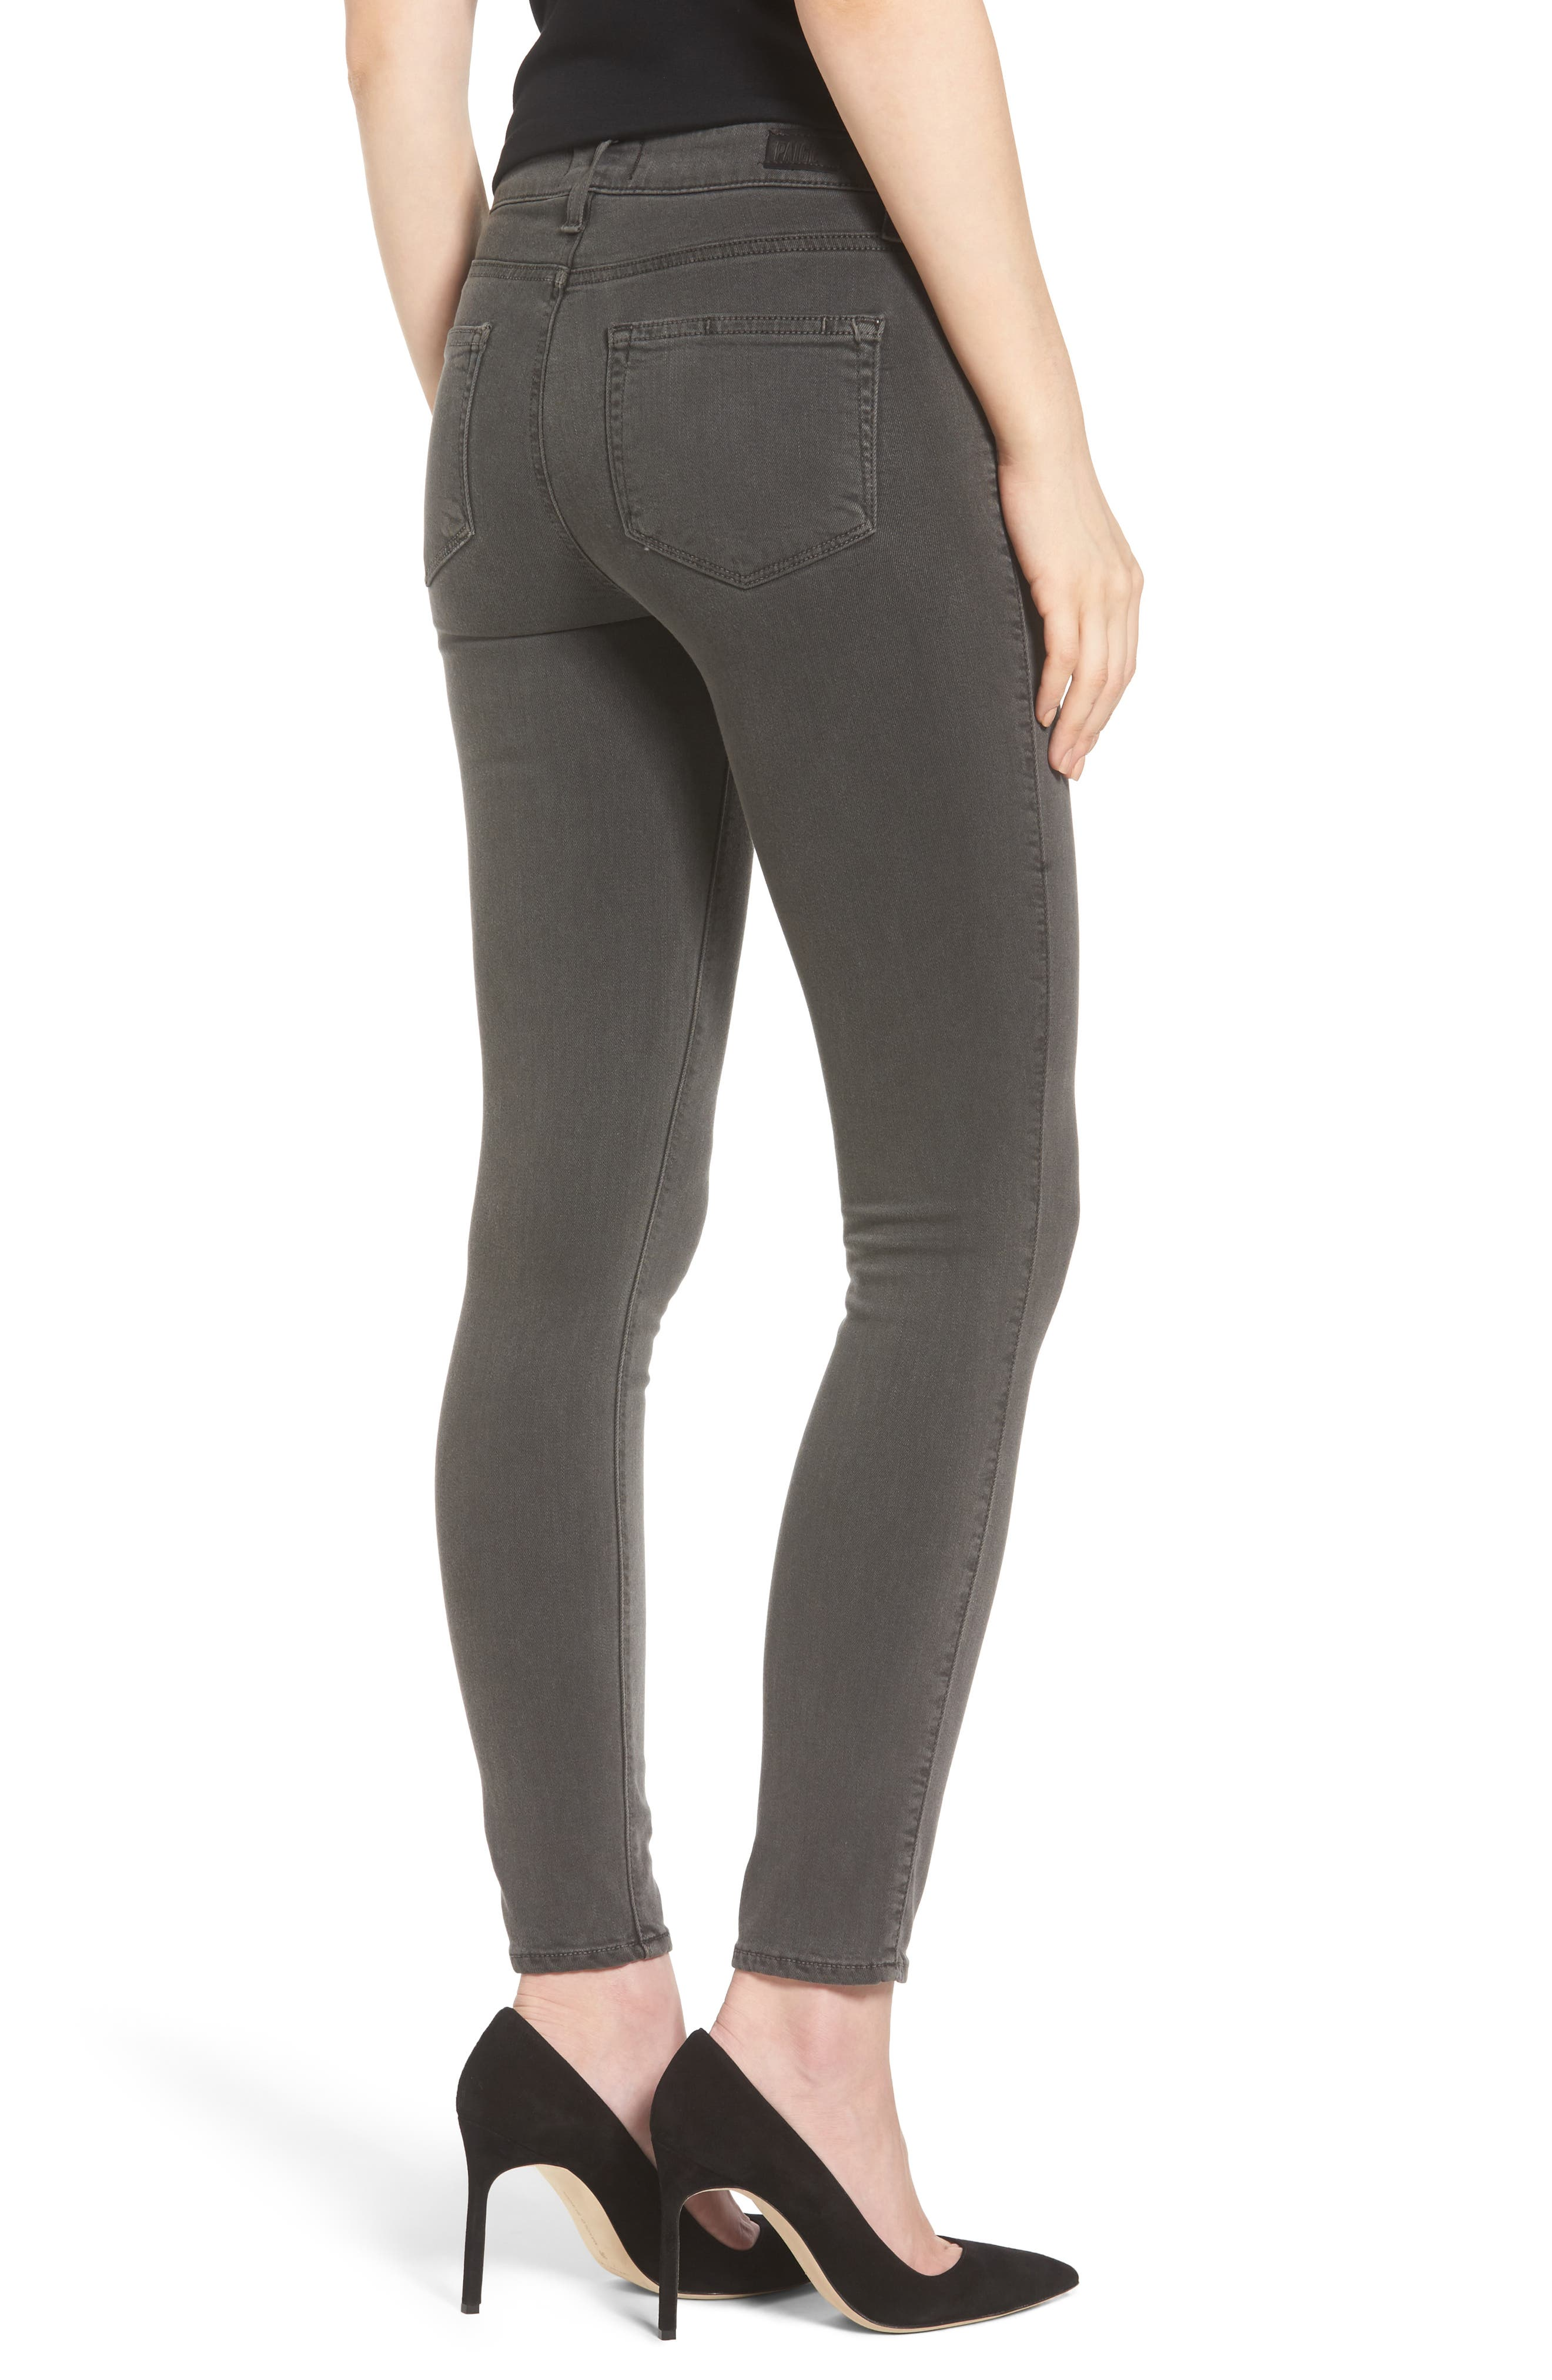 PAIGE, Transcend - Verdugo Ankle Skinny Jeans, Alternate thumbnail 2, color, 021